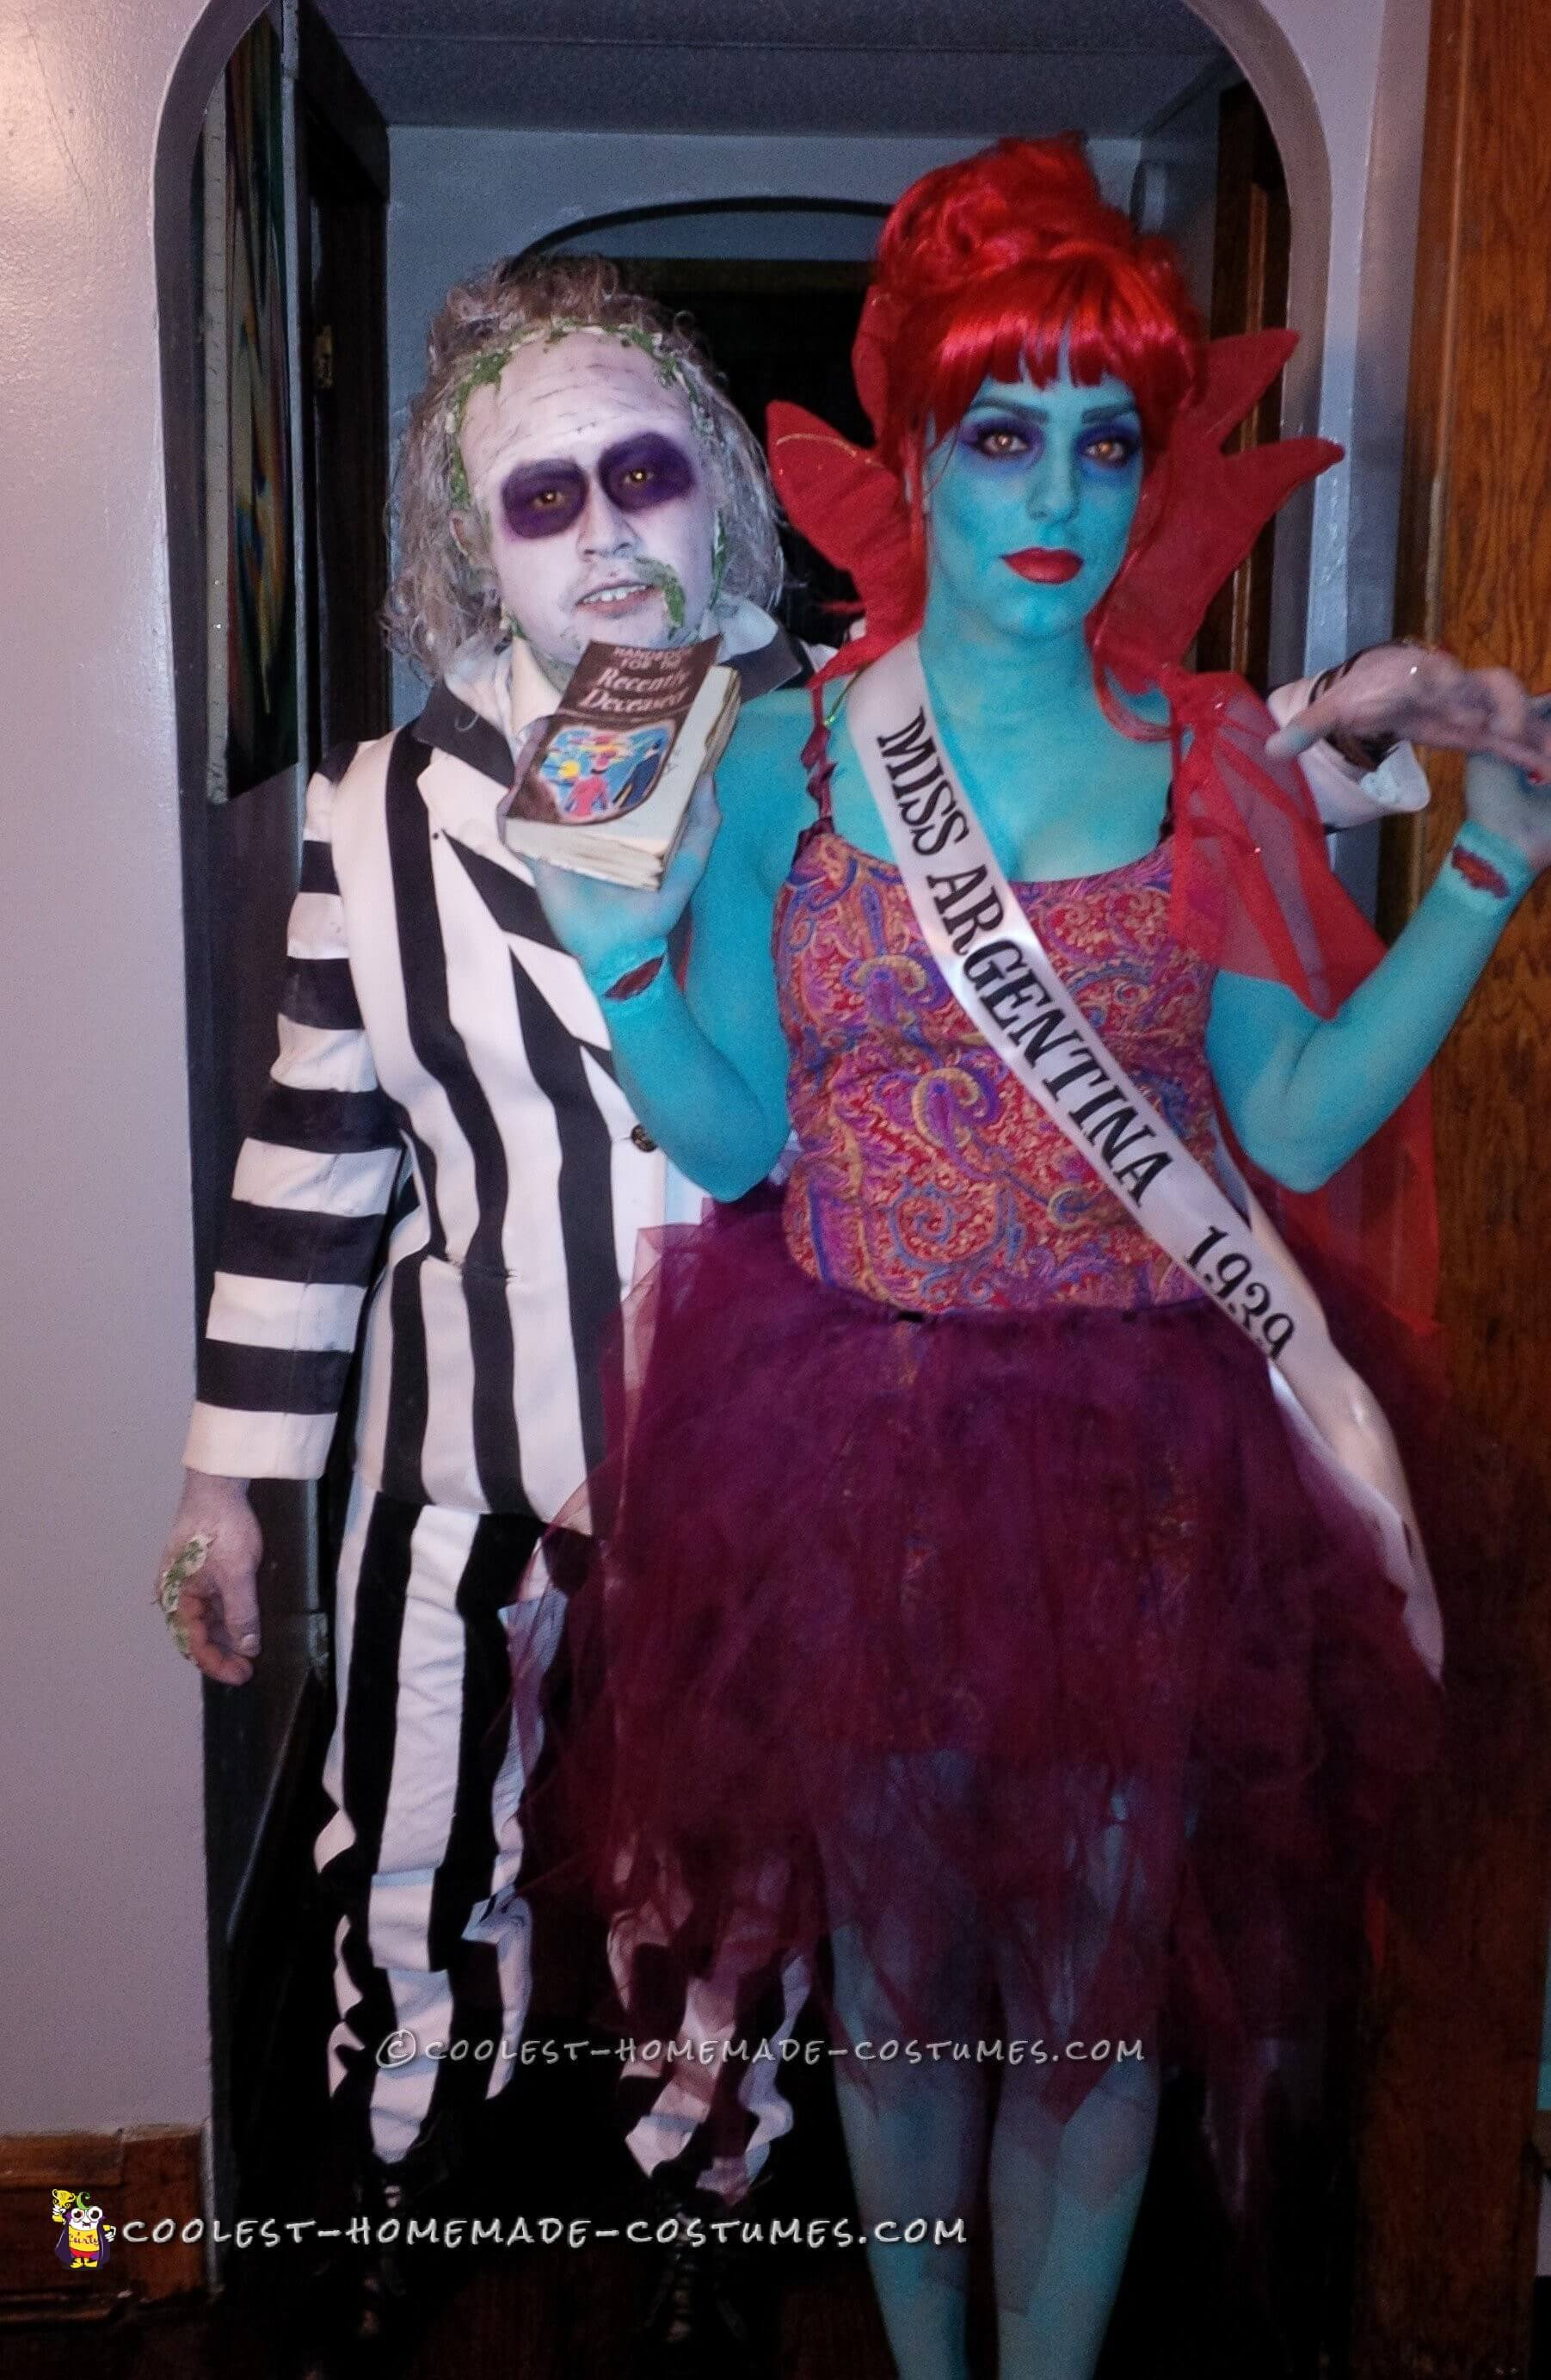 beetlejuice and miss argentina funny halloween costume for couple